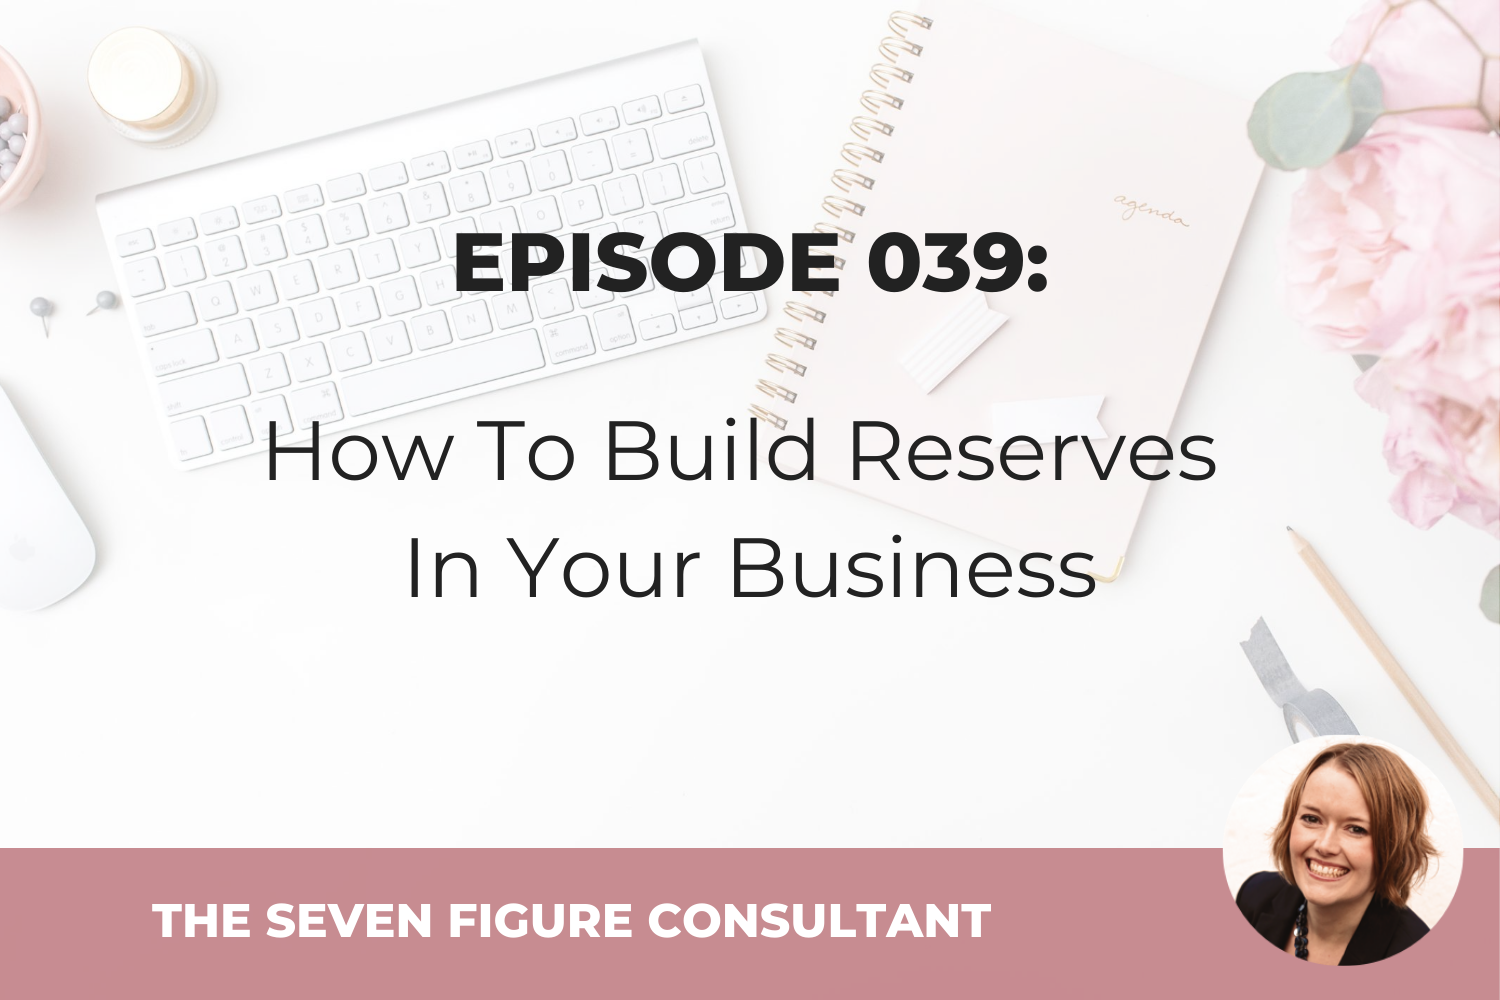 Episode 039: How To Build Reserves In Your Business